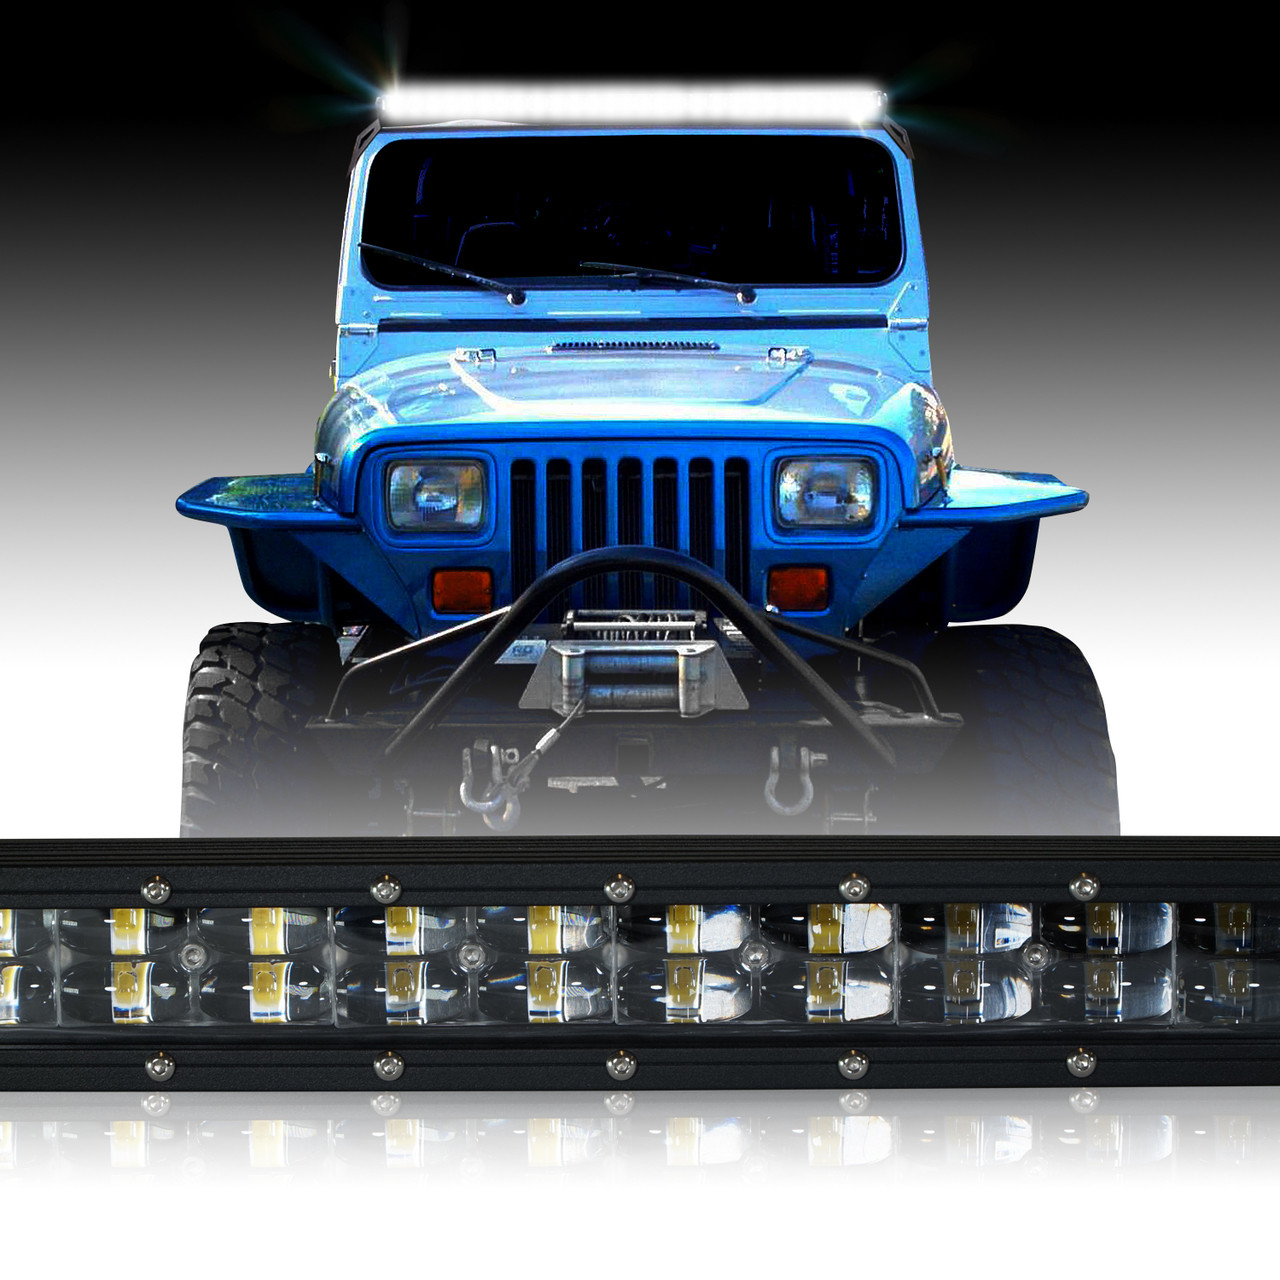 led light bar 288w 50 inches bracket wiring harness kit for wrangler rh jeepfederation com 1989 Jeep Wrangler Wiring Diagram 2012 Jeep Wrangler Wiring Diagram